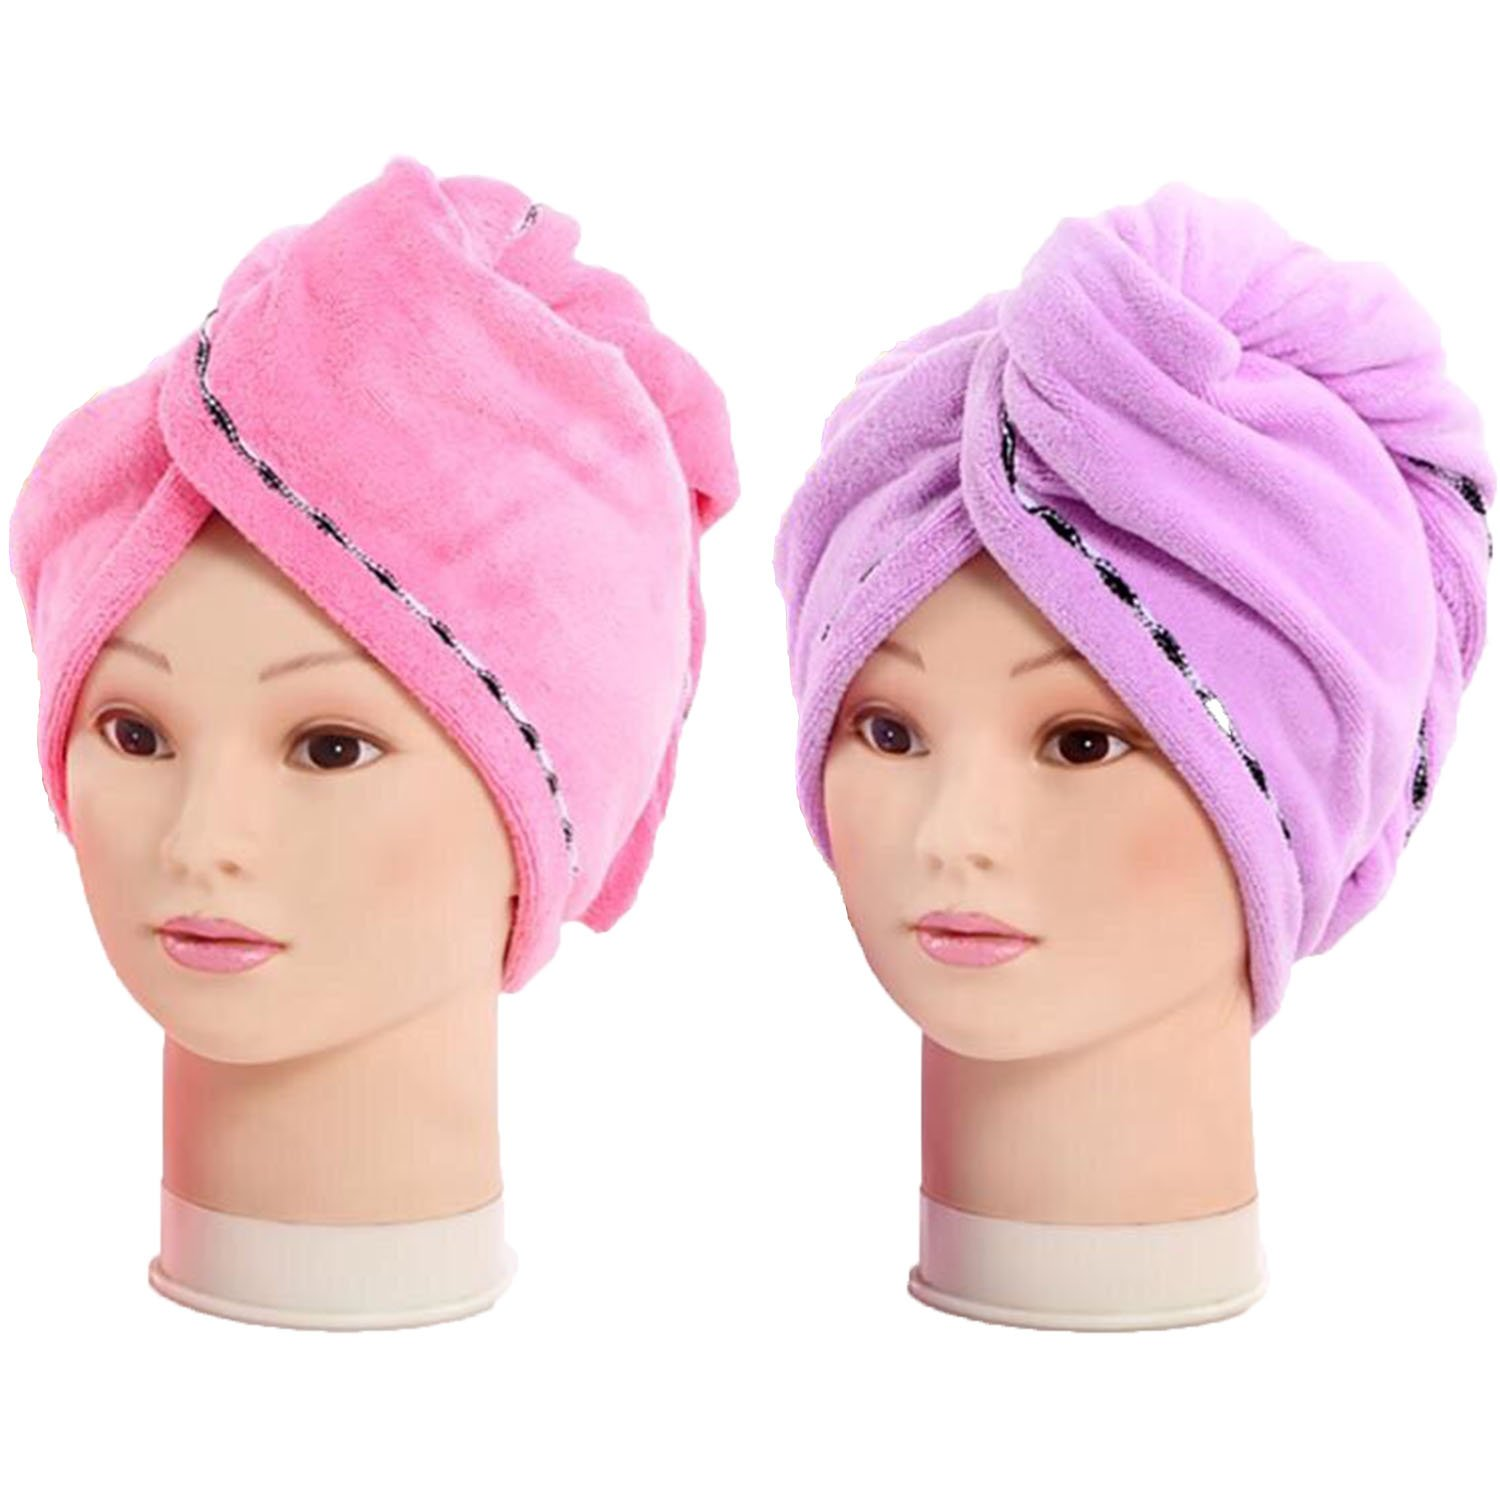 2 Pack Fast Hair Drying Towels Microfiber Ultra Absorbent Hair Turban Quick Dry Cap, Long Hair Wrap Bath Shower Head Towel 10inch X 25inch Pink & Purple Ruidoo